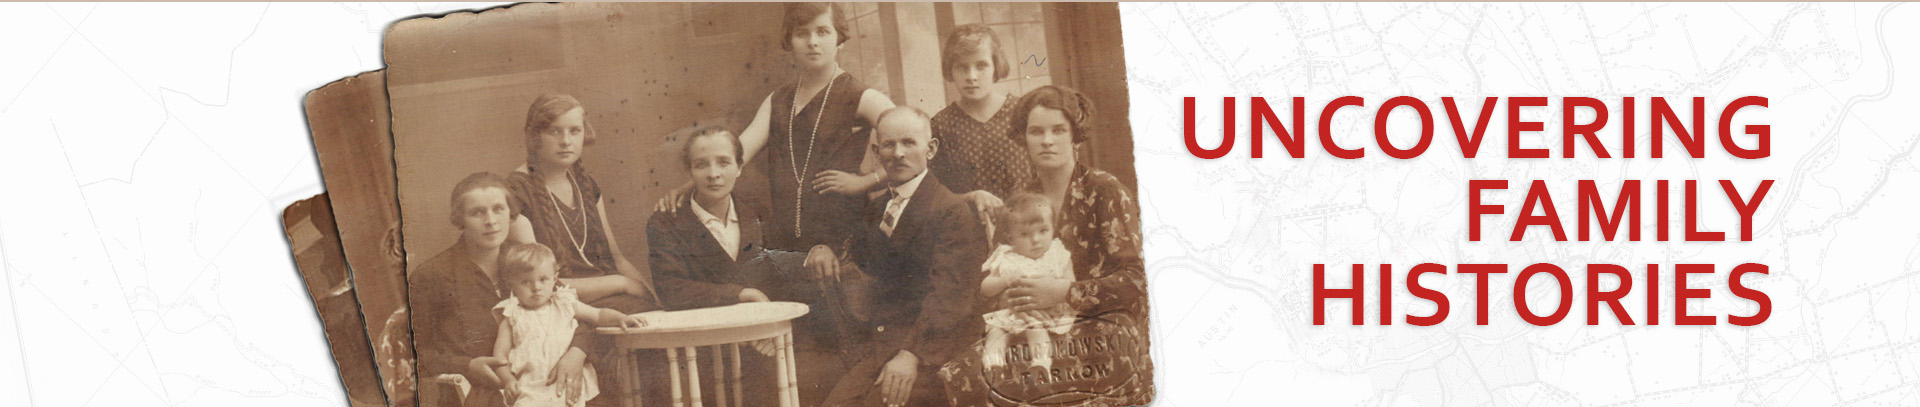 Uncovering Family Histories